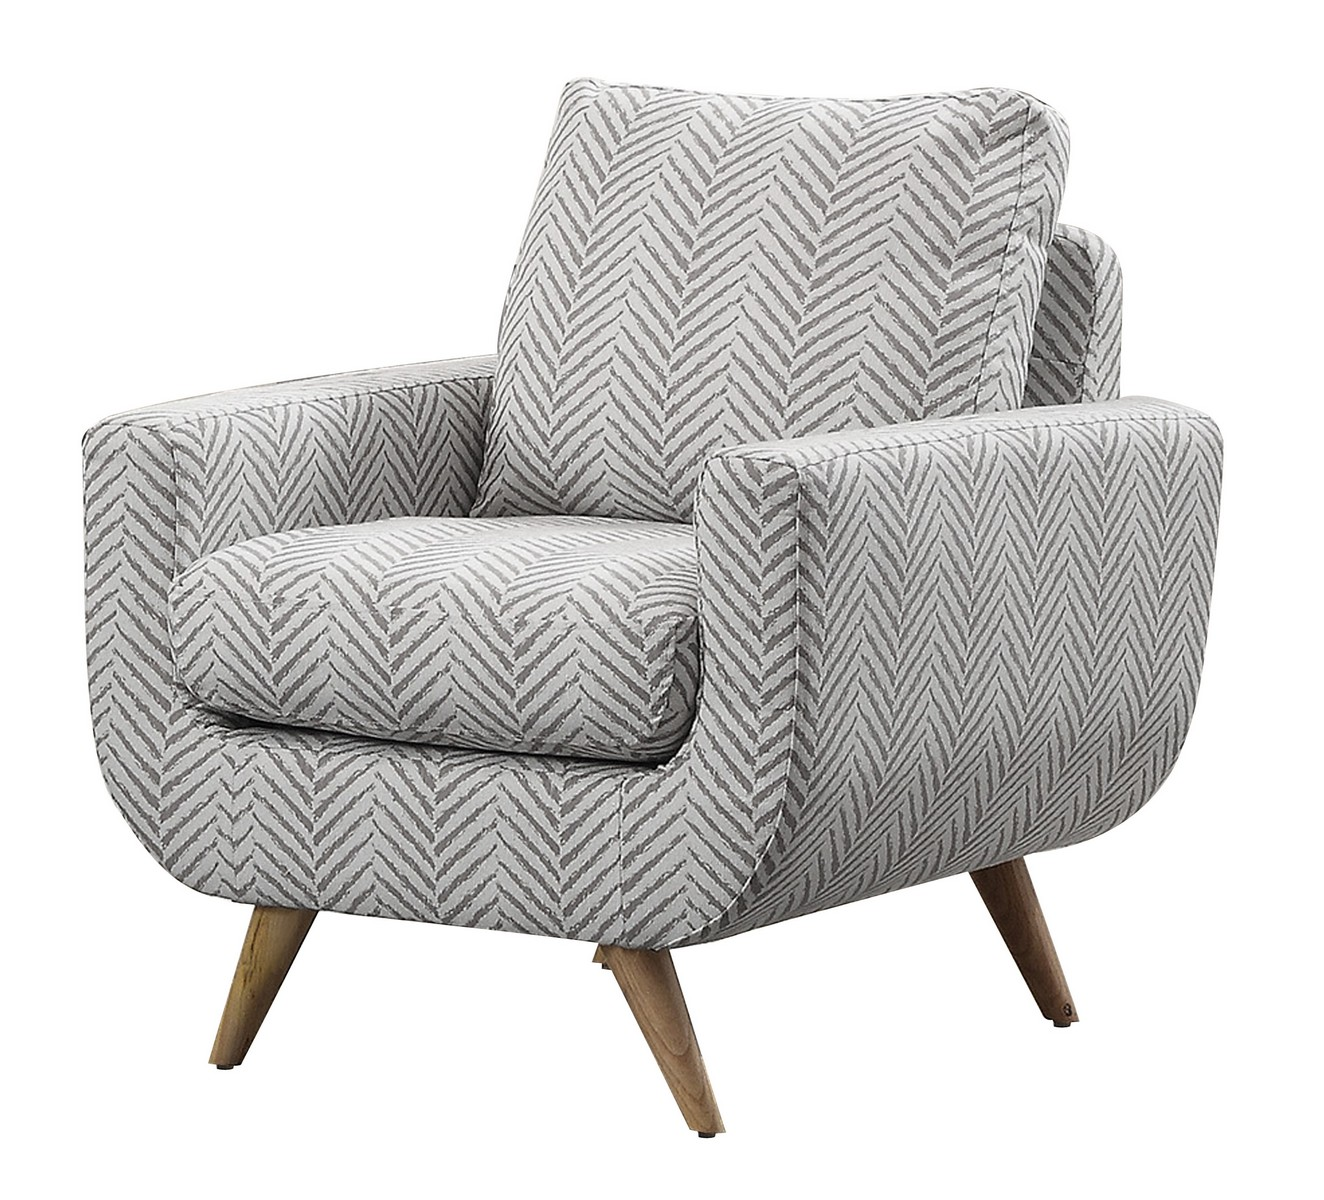 Homelegance Deryn Accent Chair - Polyester - Grey